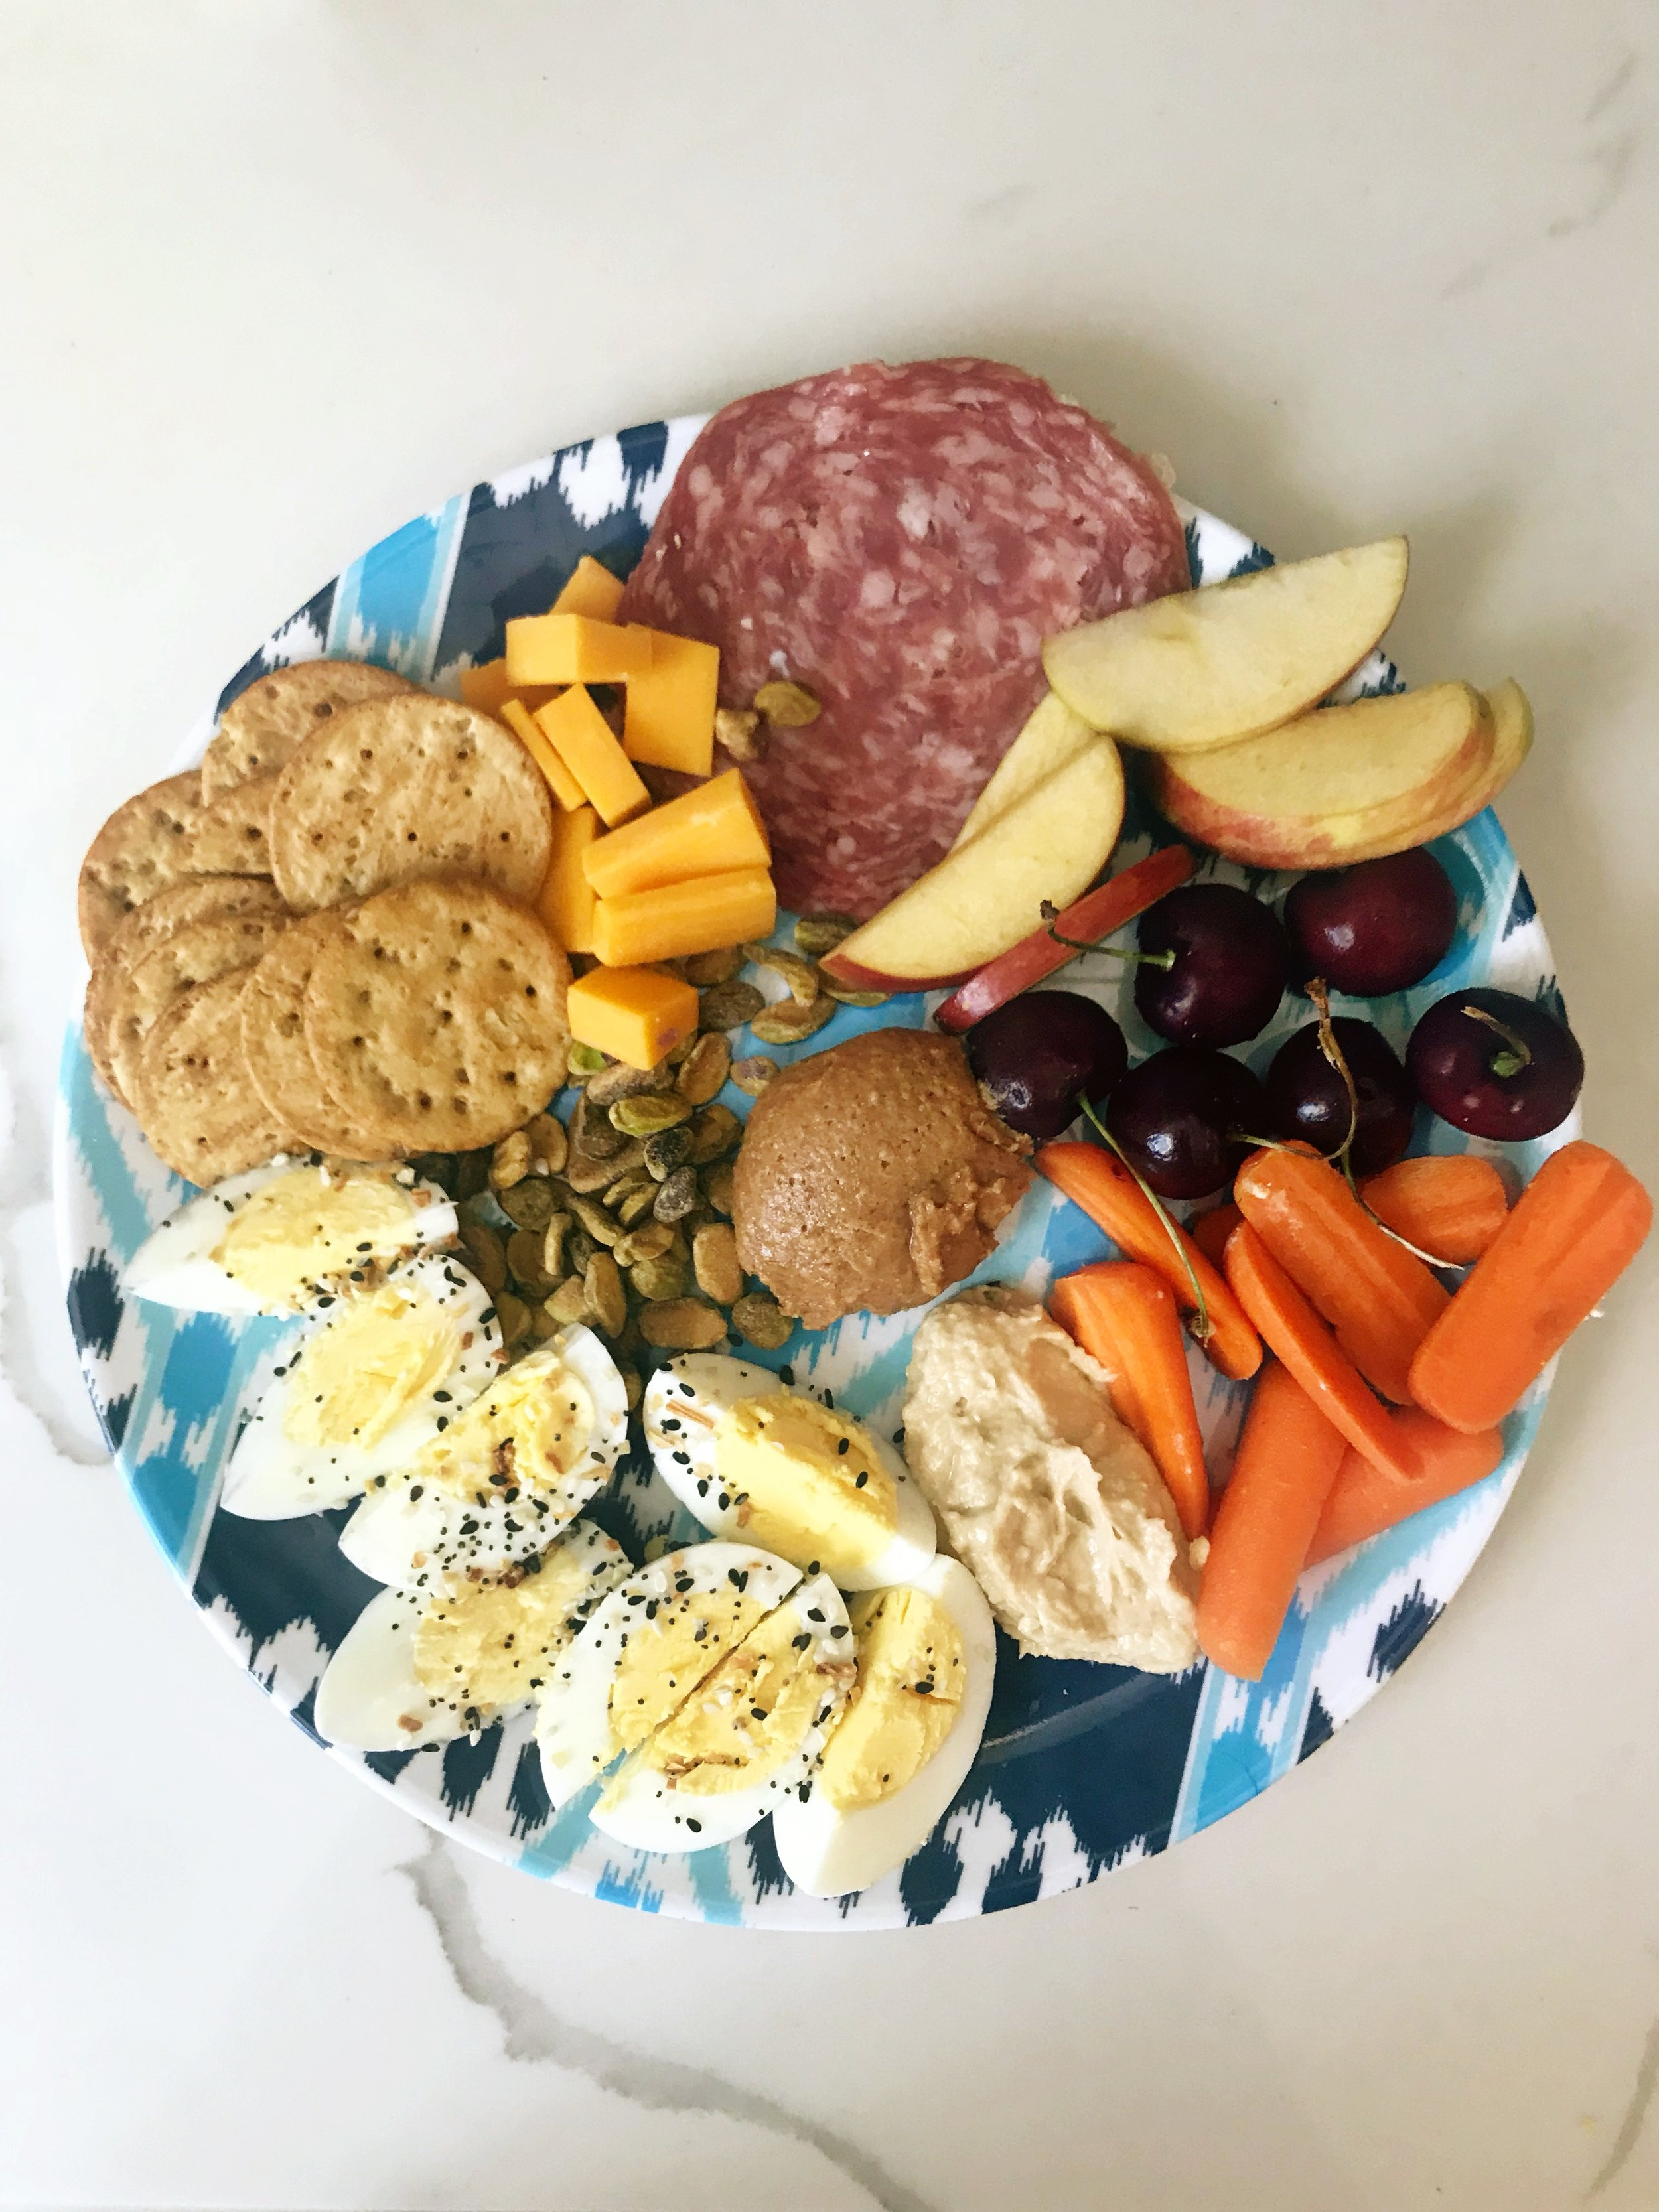 This is a typical lunch plate for me. My kids eat most of these things too so its nice to not have to make two different lunches for myself and them .